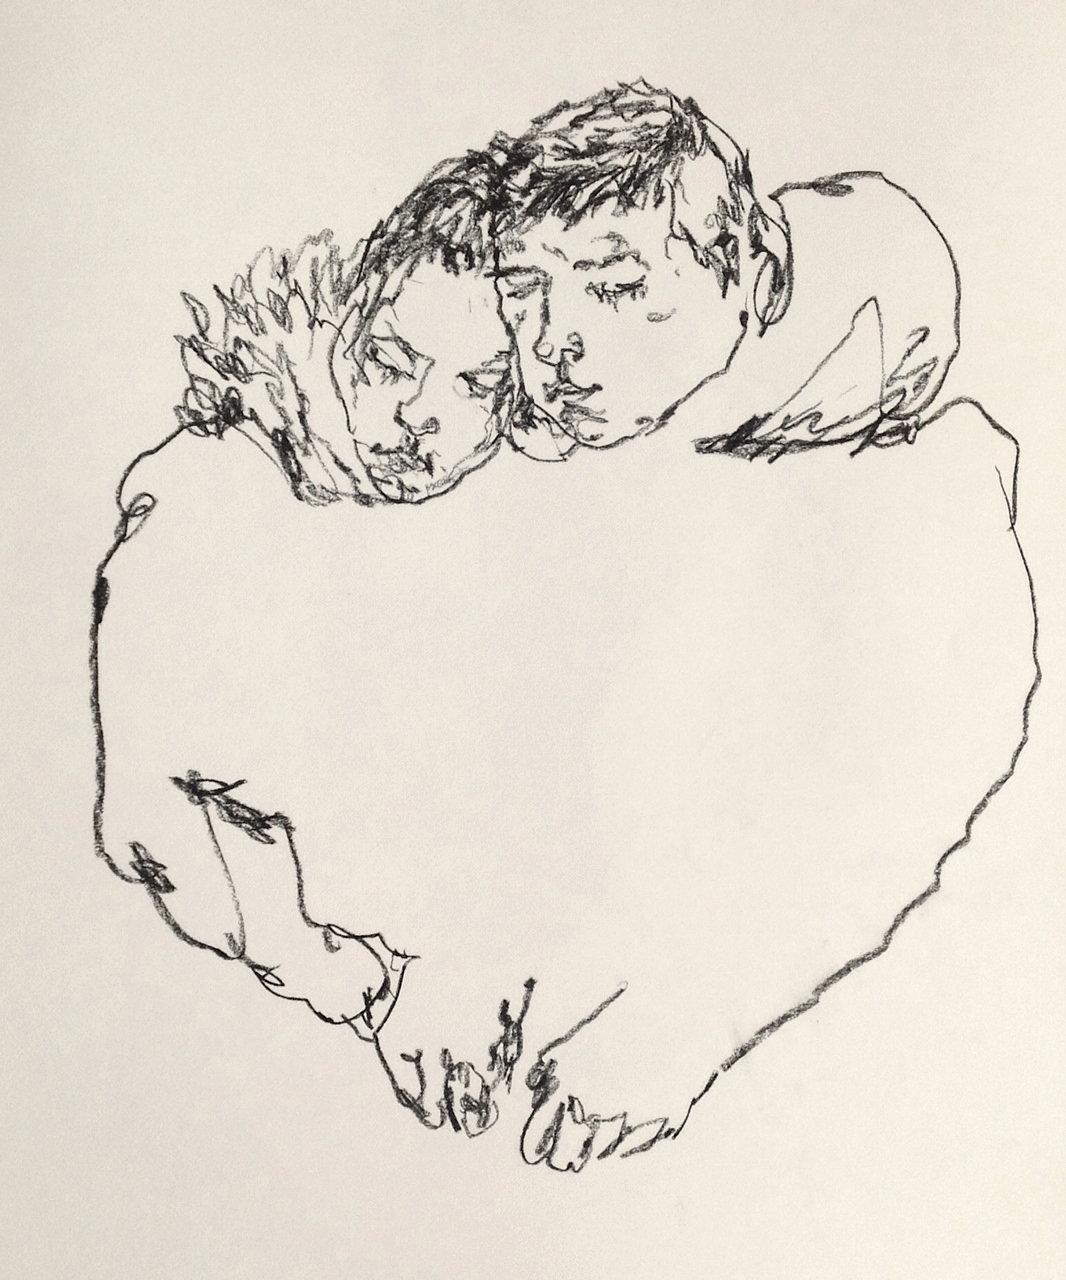 mountvision: A couple drawn this morning in the downtown 1 subway train, november 2013. Gregory Muenzen